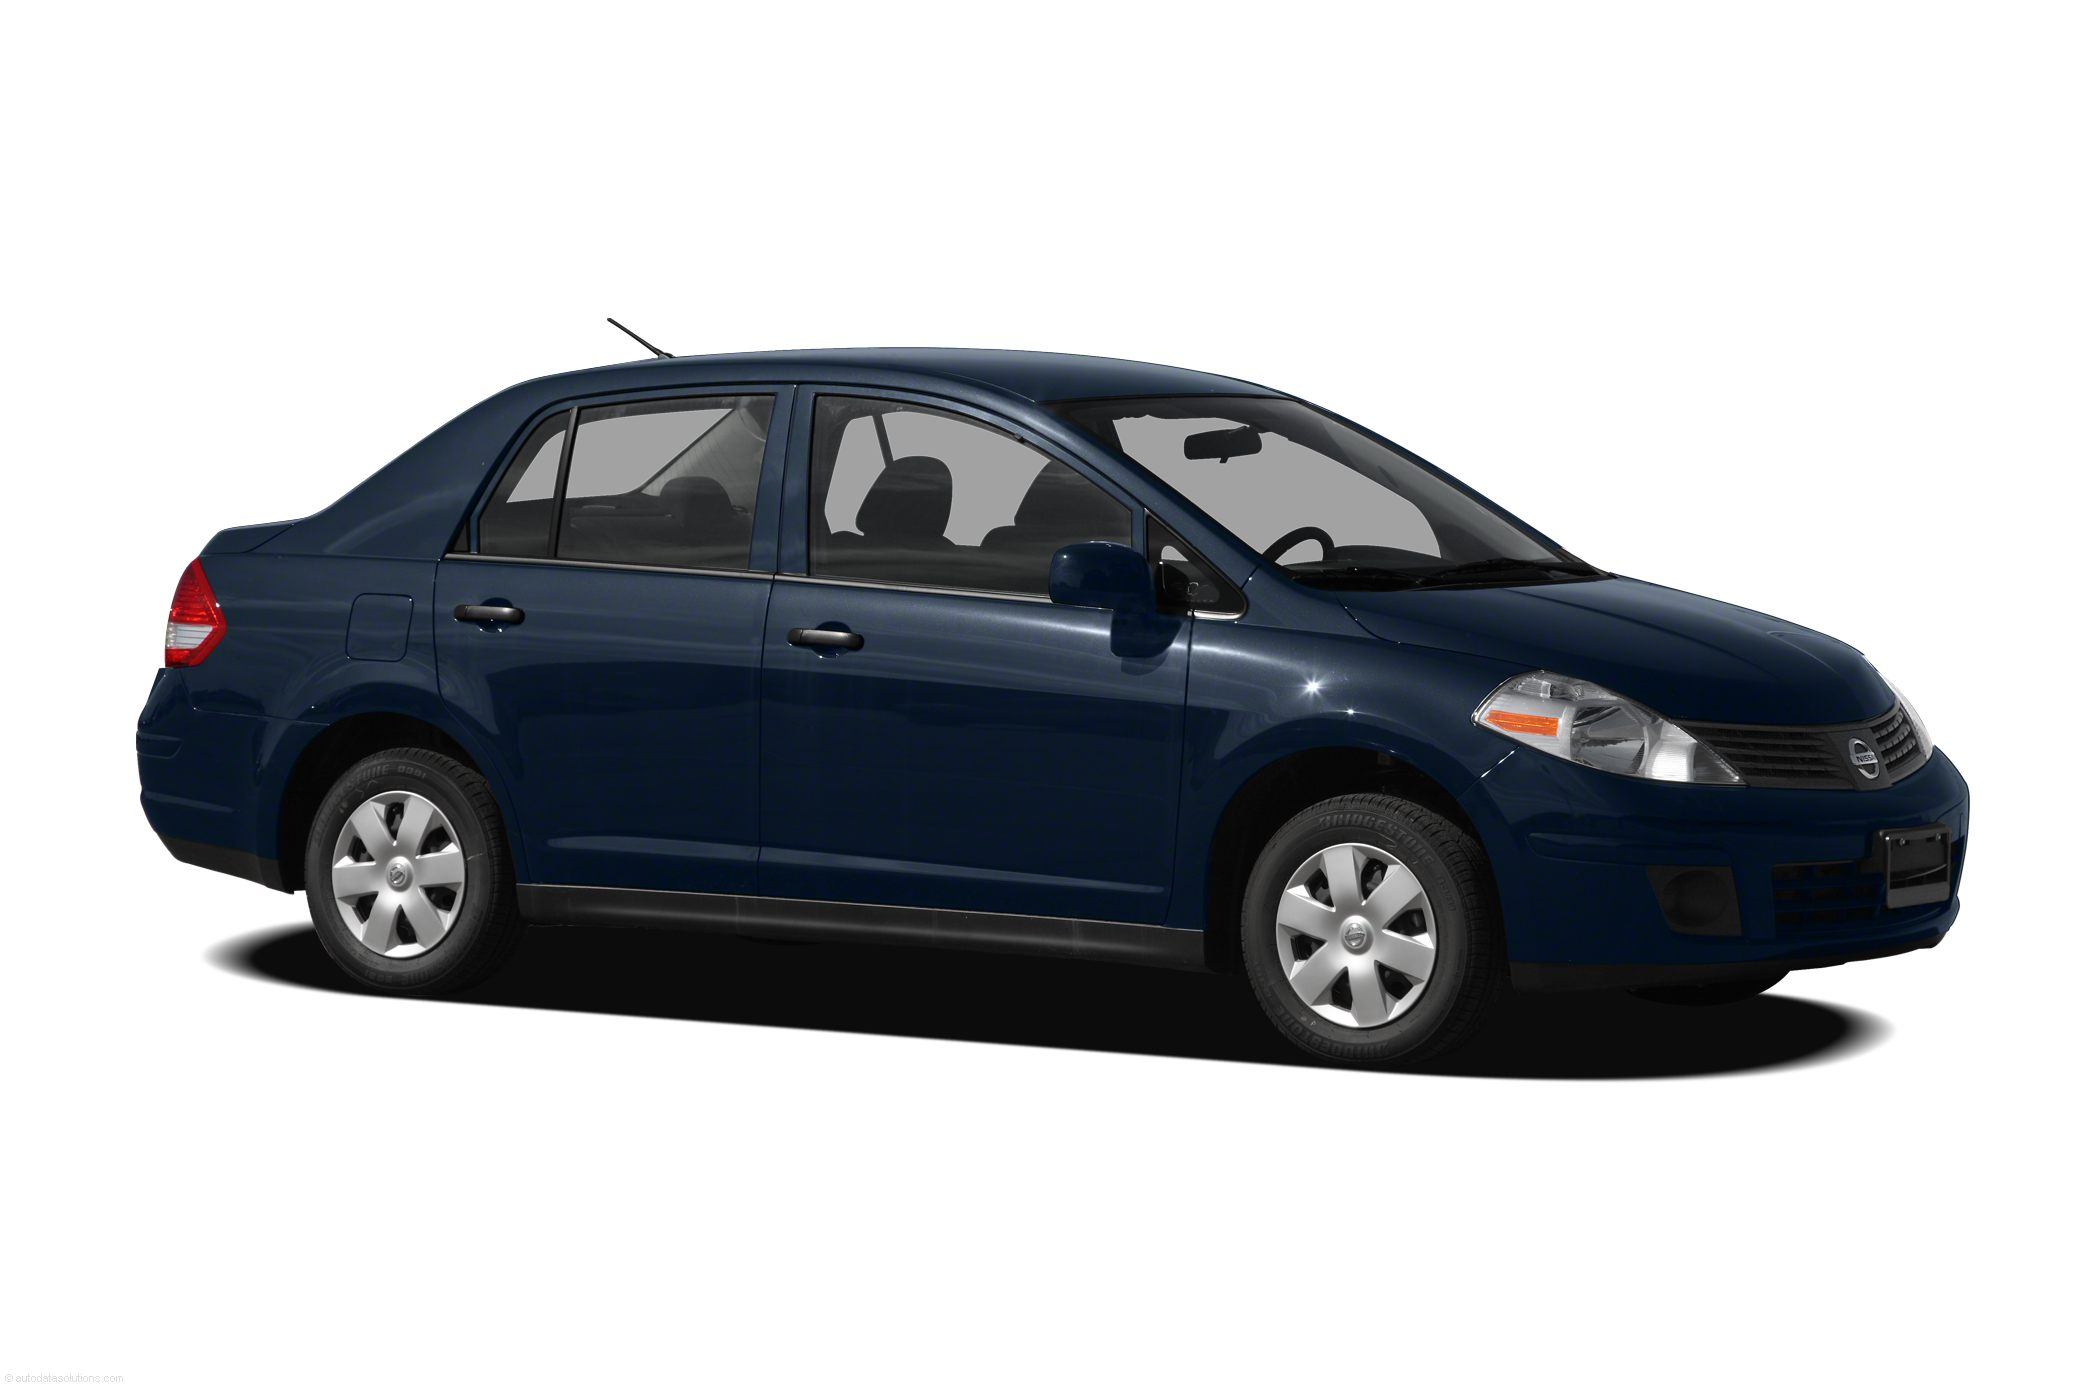 1649 2010 nissan versa sedan 18 Sl fq oem 2 2048 together with B17 nissan versa 12 metallic blue colorspan20122014 furthermore Wallpaper 0b in addition Pictures Nissan Versa Sedan 2006 09 125516 1280x960 in addition 2328 2008 Nissan Versa 3. on nissan versa